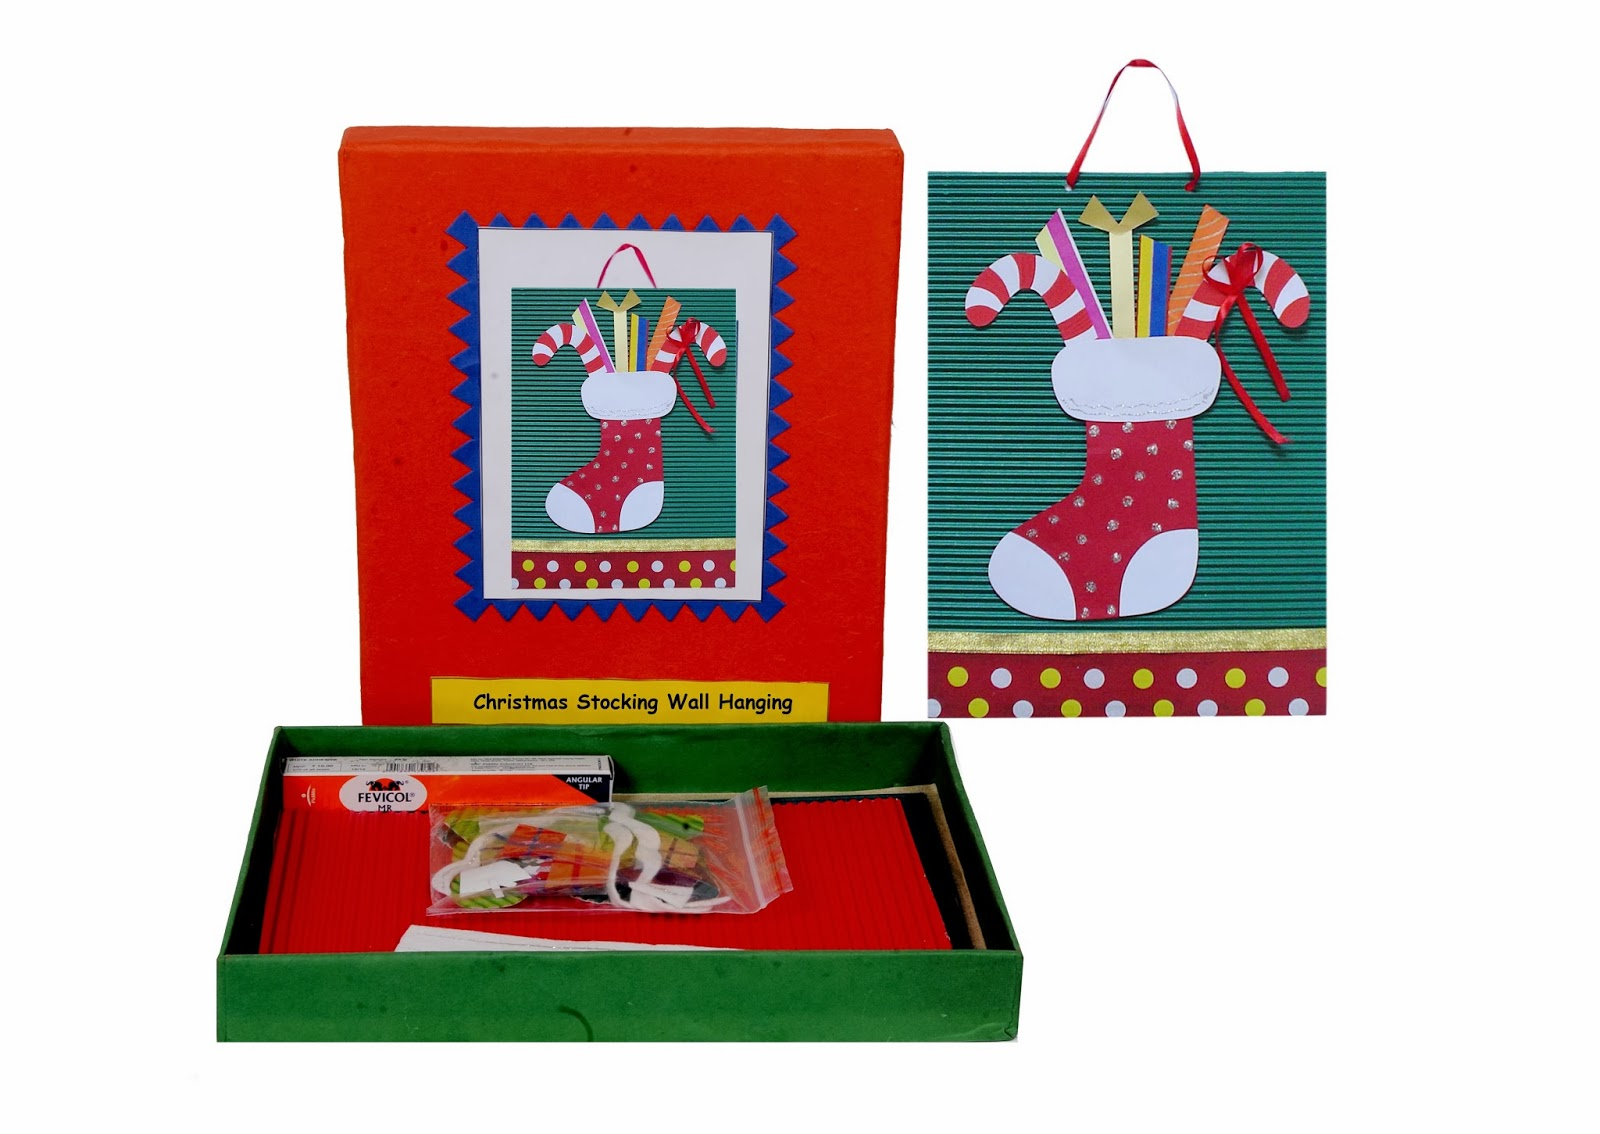 Fantastic do it yourself craft kits by the jaipur craft kit wall wall hangings christmas stocking wall hanging solutioingenieria Choice Image